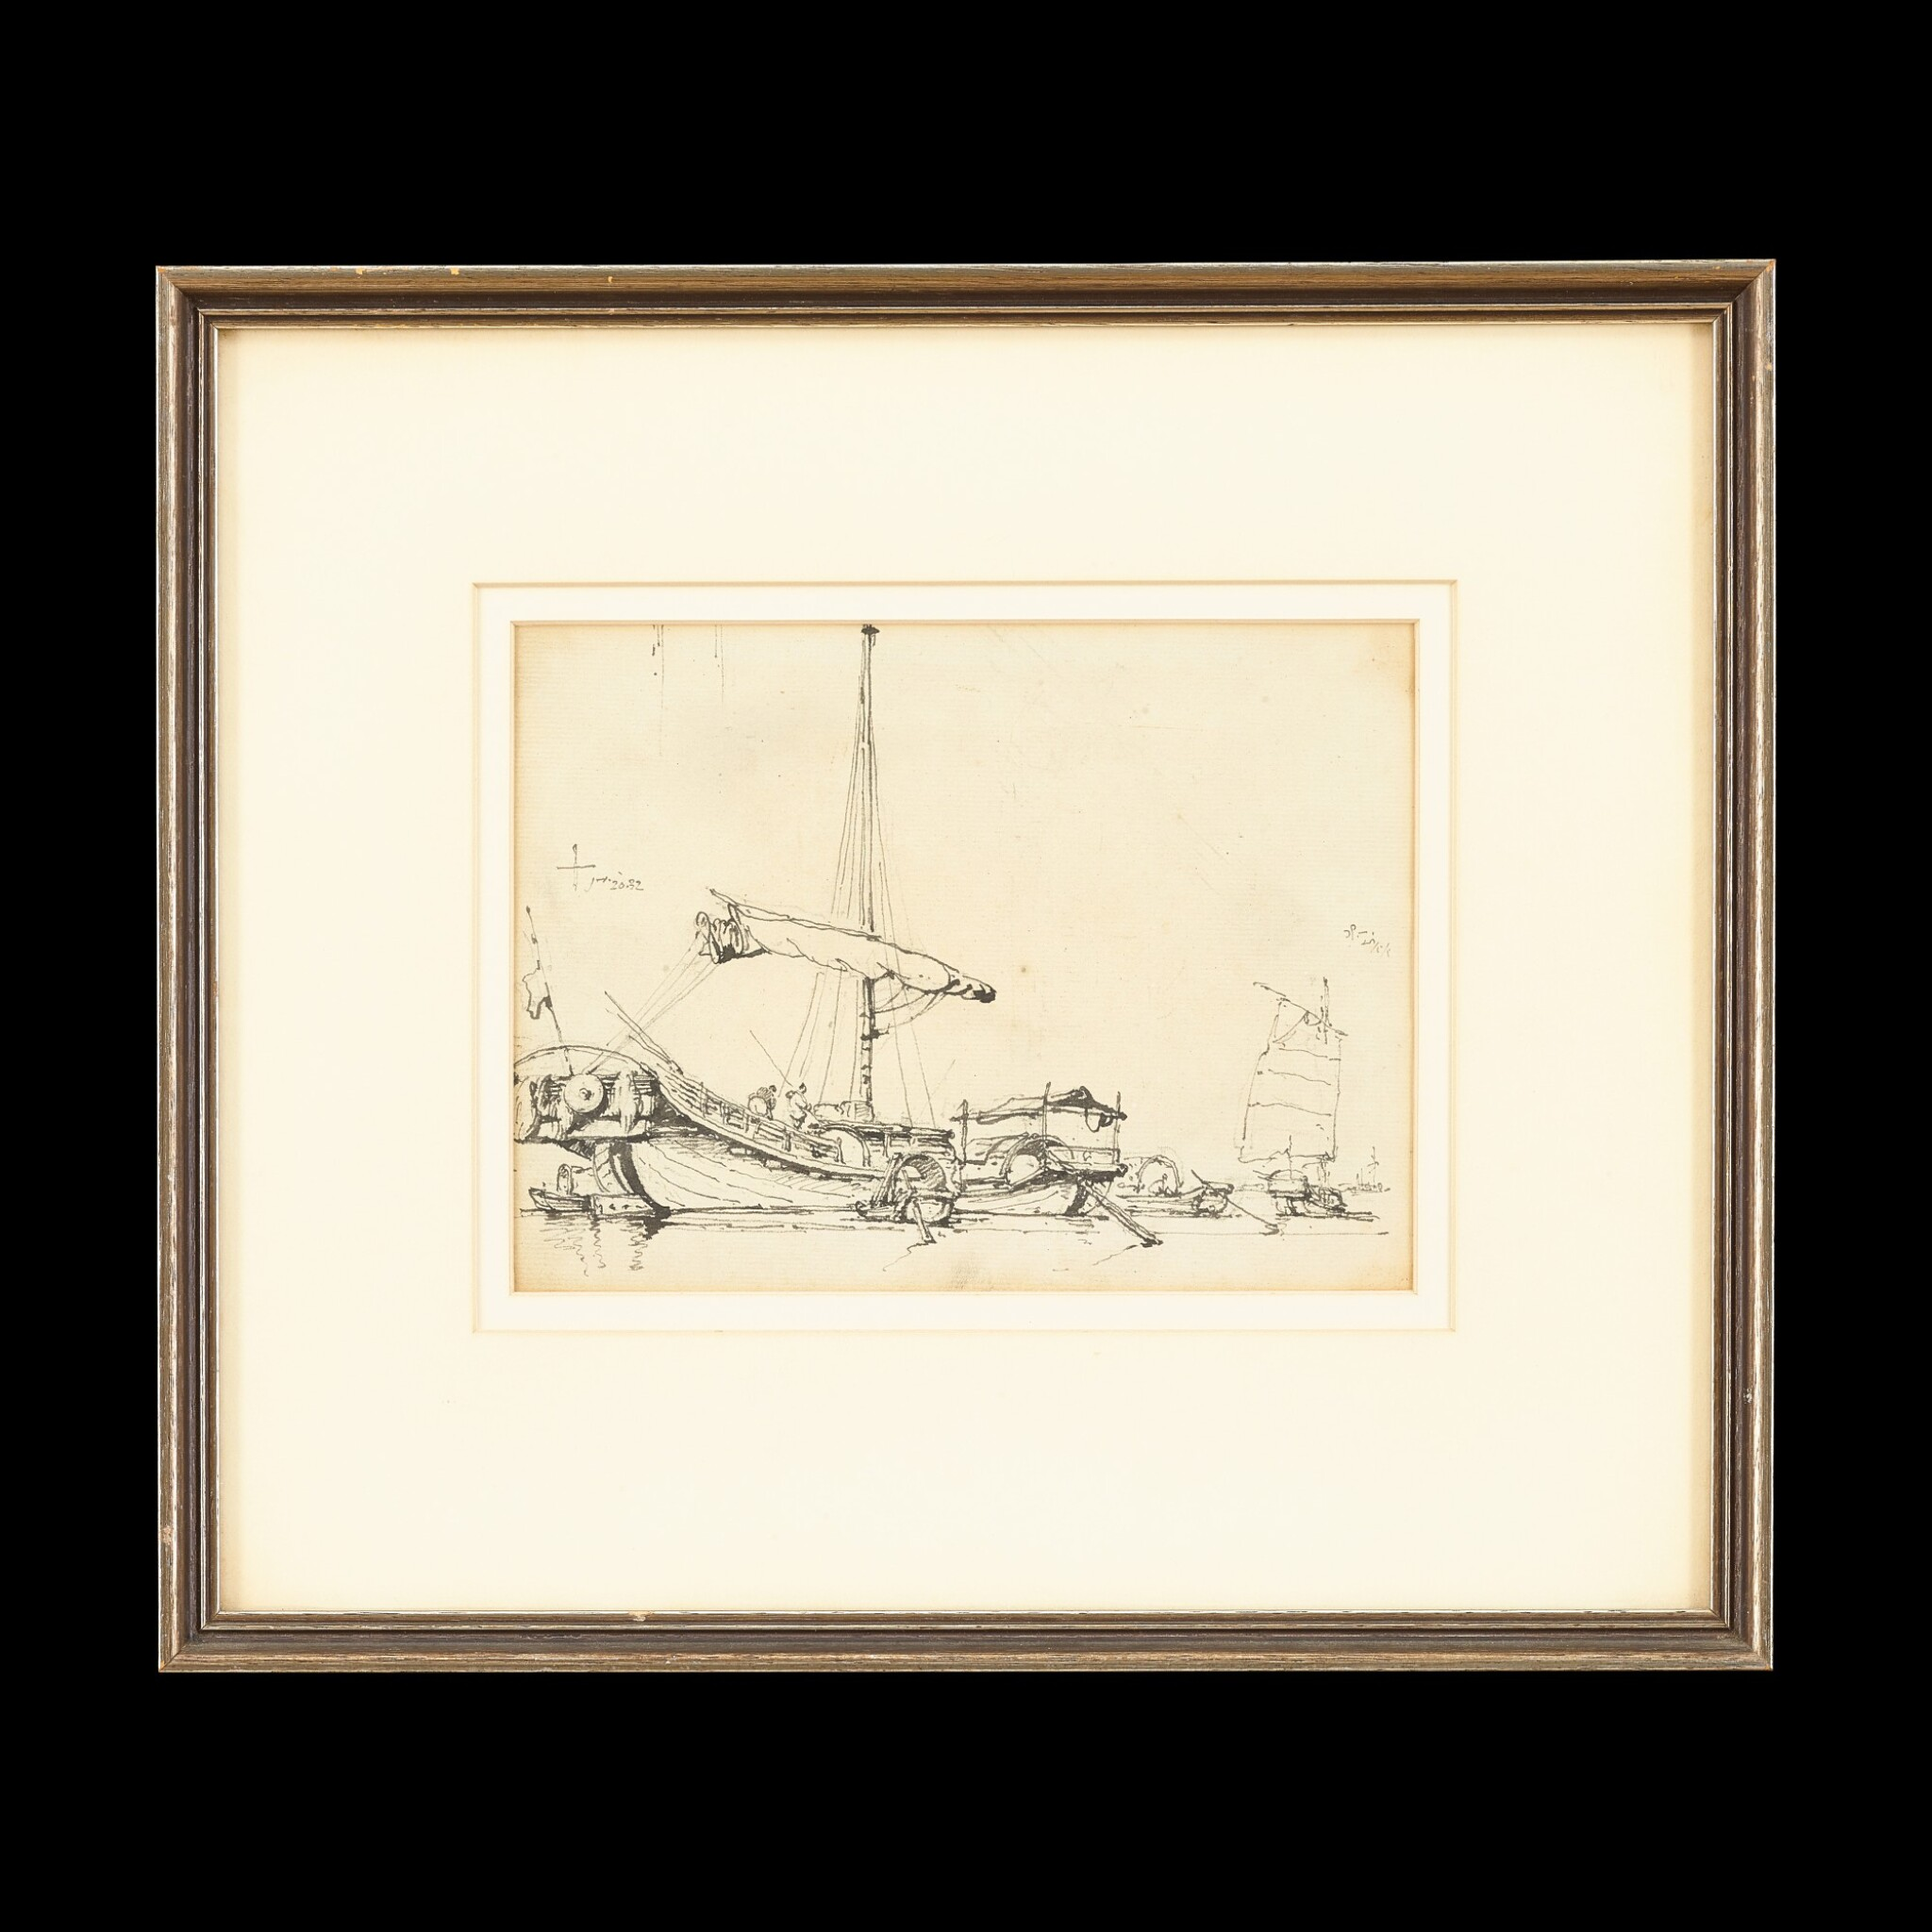 View full screen - View 1 of Lot 202. George Chinnery (1774-1852), 1829 Chinese Junks at Anchor | 錢納利(1774-1852年)1829年   素描中國帆船   紙本鉛筆、鋼筆及墨水 鏡框.